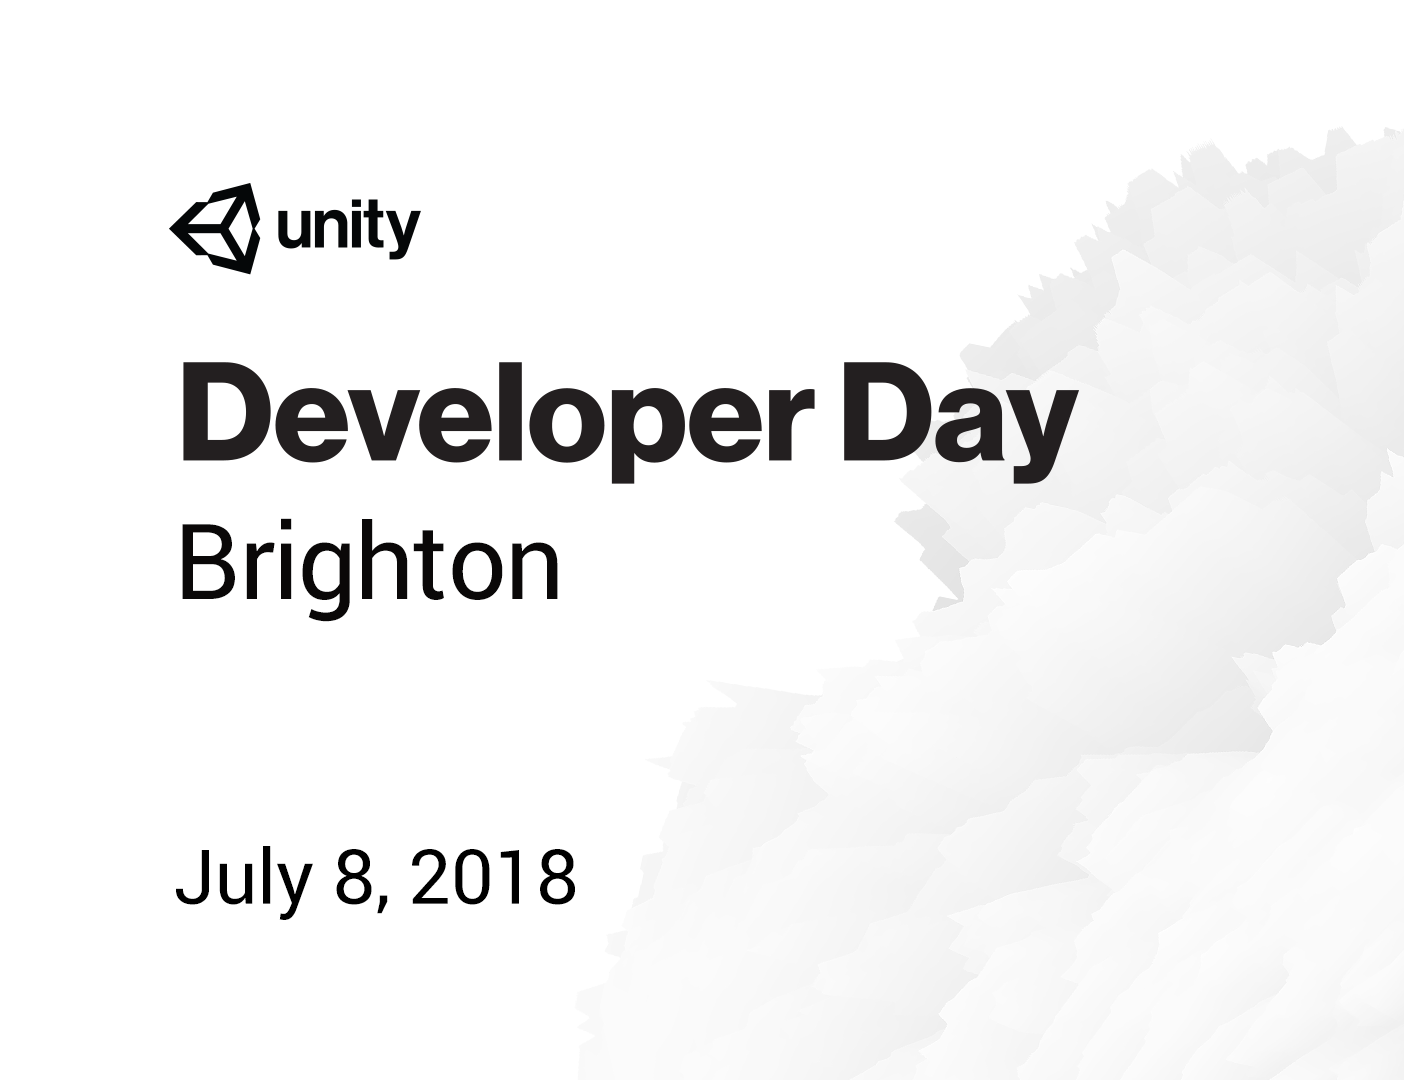 Unity Developer Day: Brighton 2018